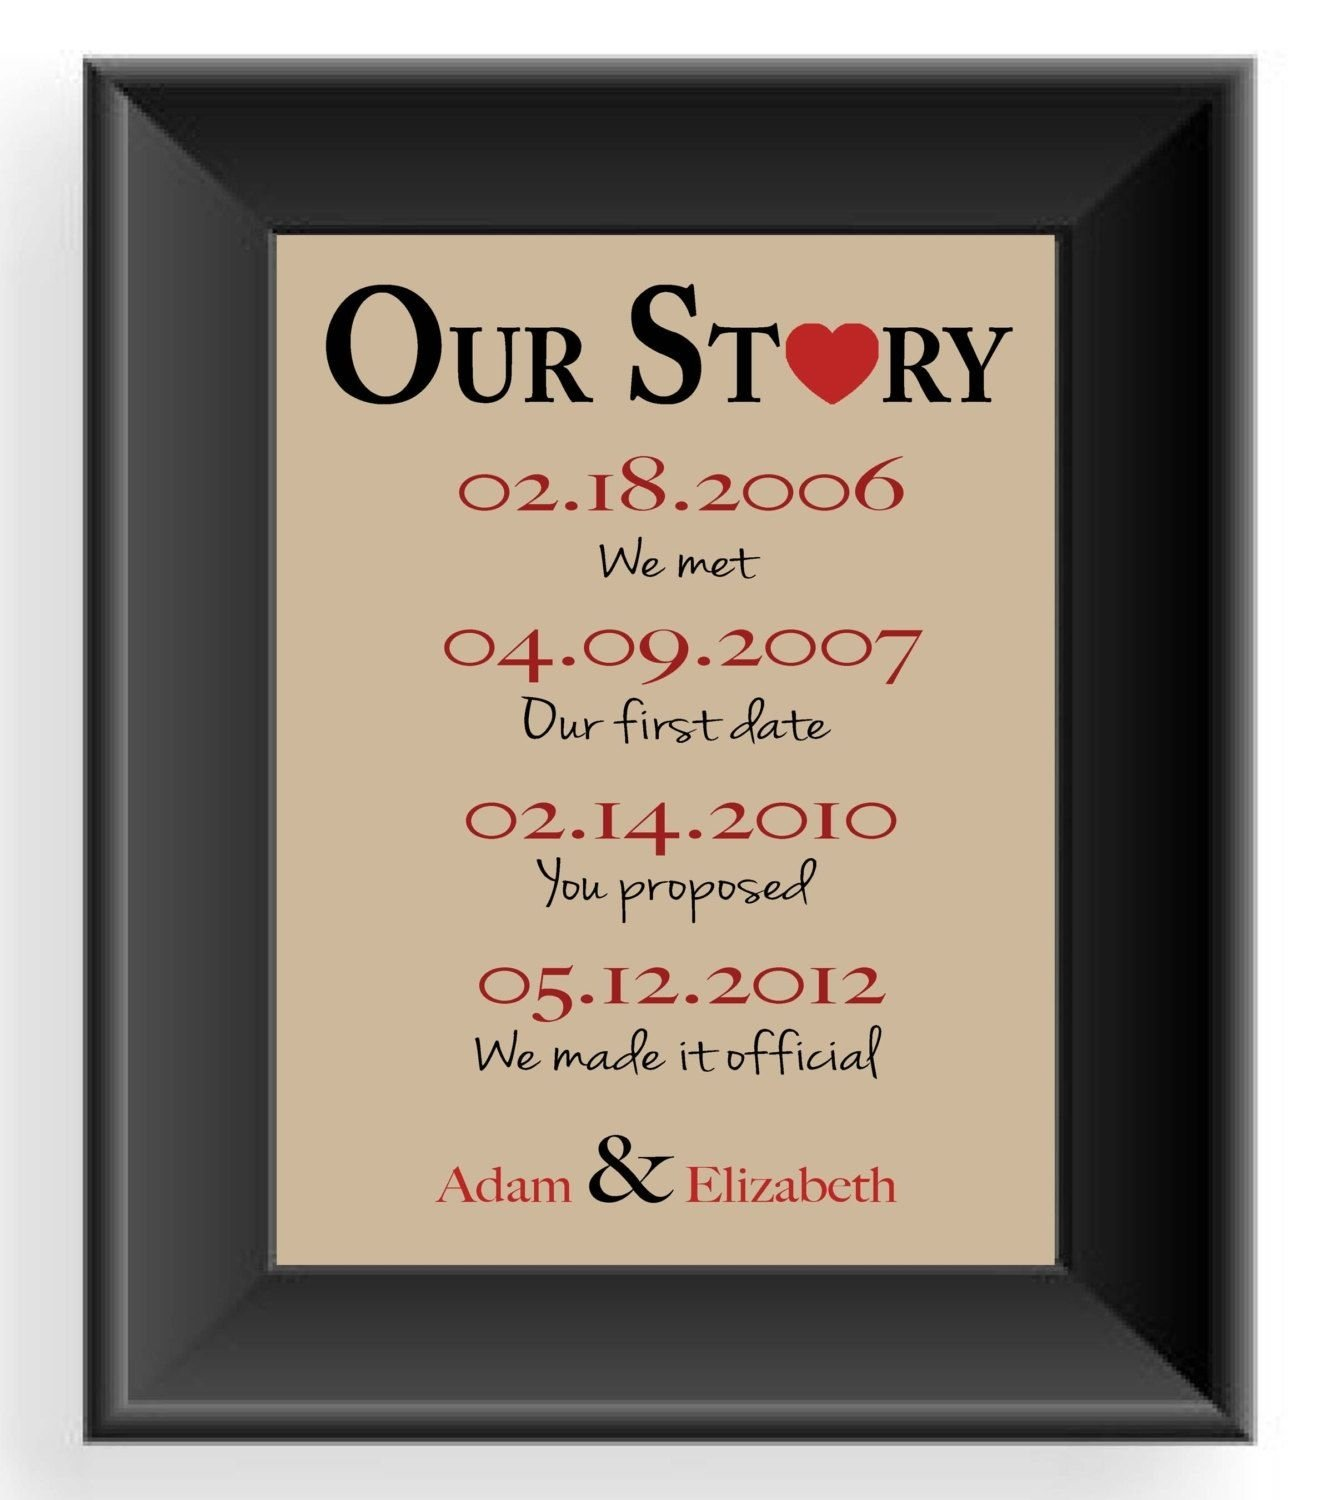 10 Fabulous Second Anniversary Gift Ideas For Husband valentines day gift important dates wedding gift for couple 28 2020